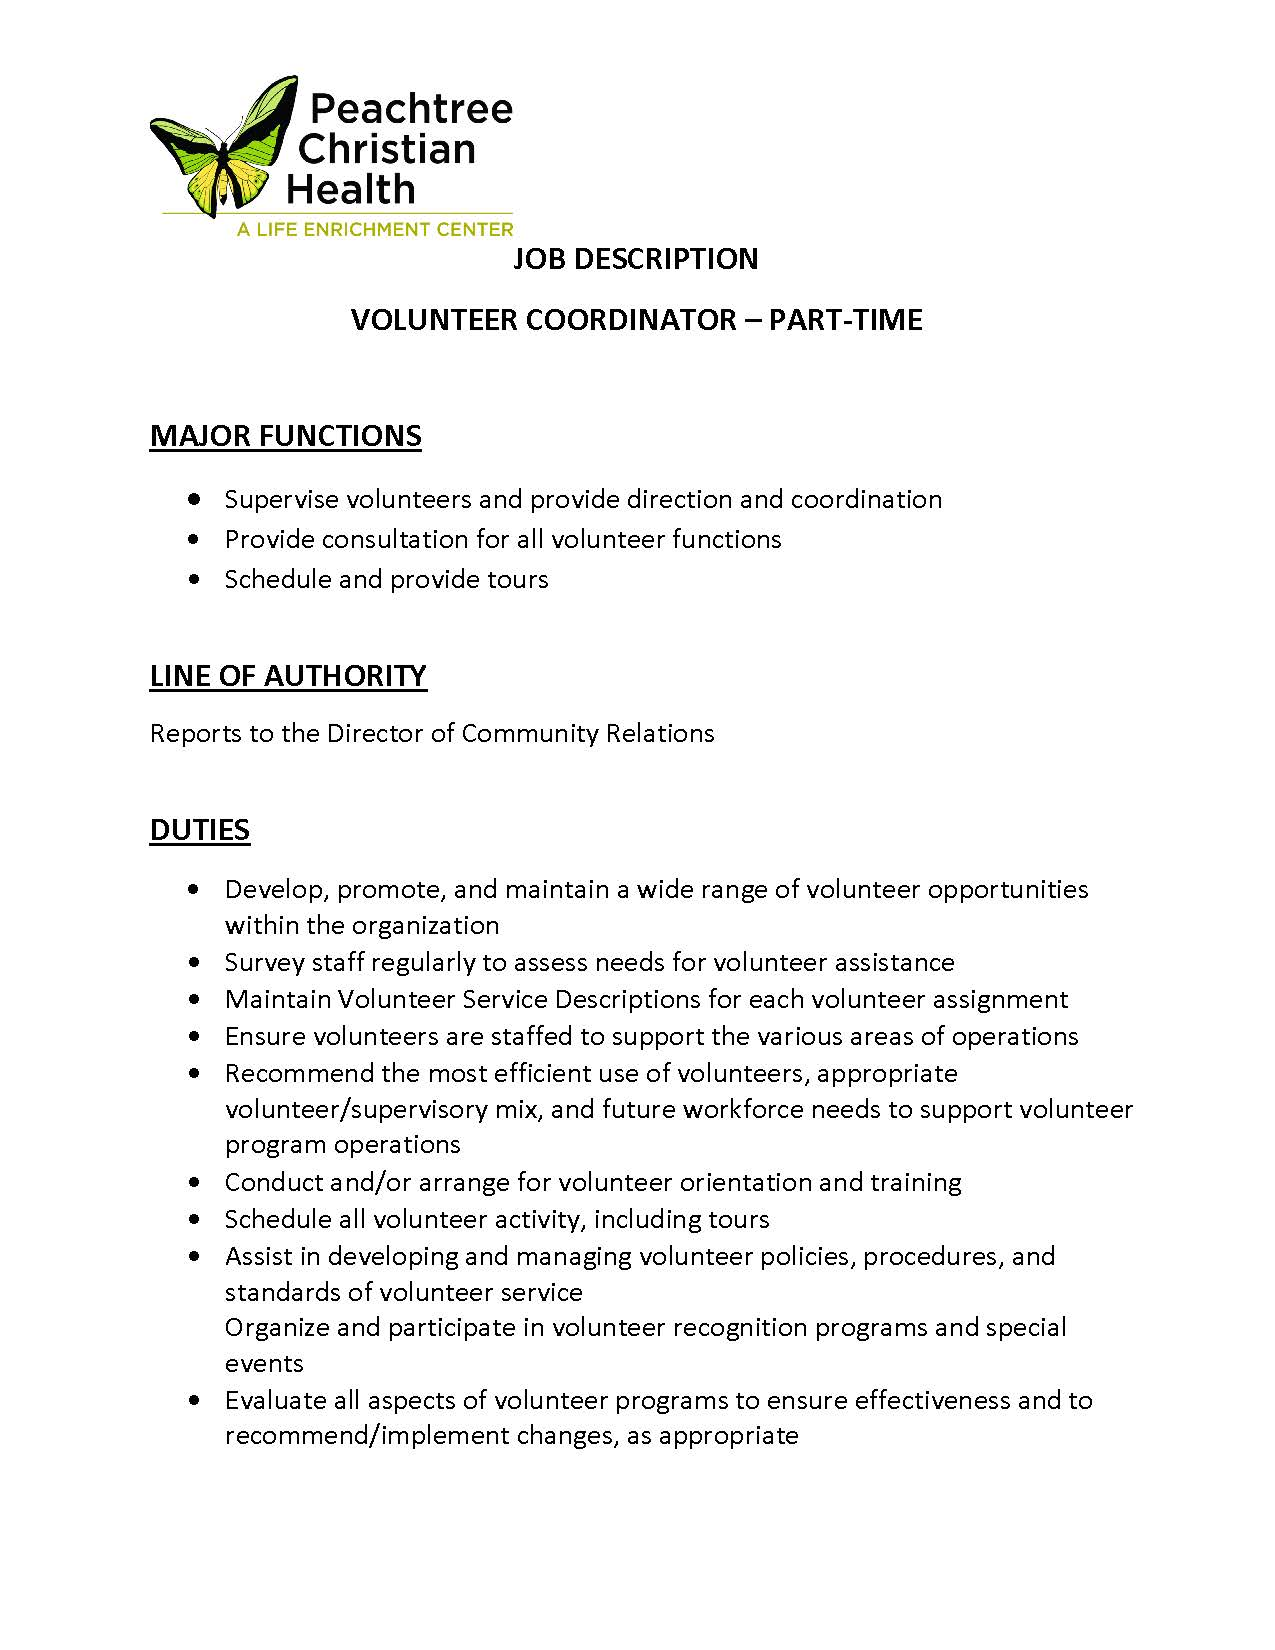 PCH Job Description- Volunteer Coordinator - 3 18 19 (1)_Page_1